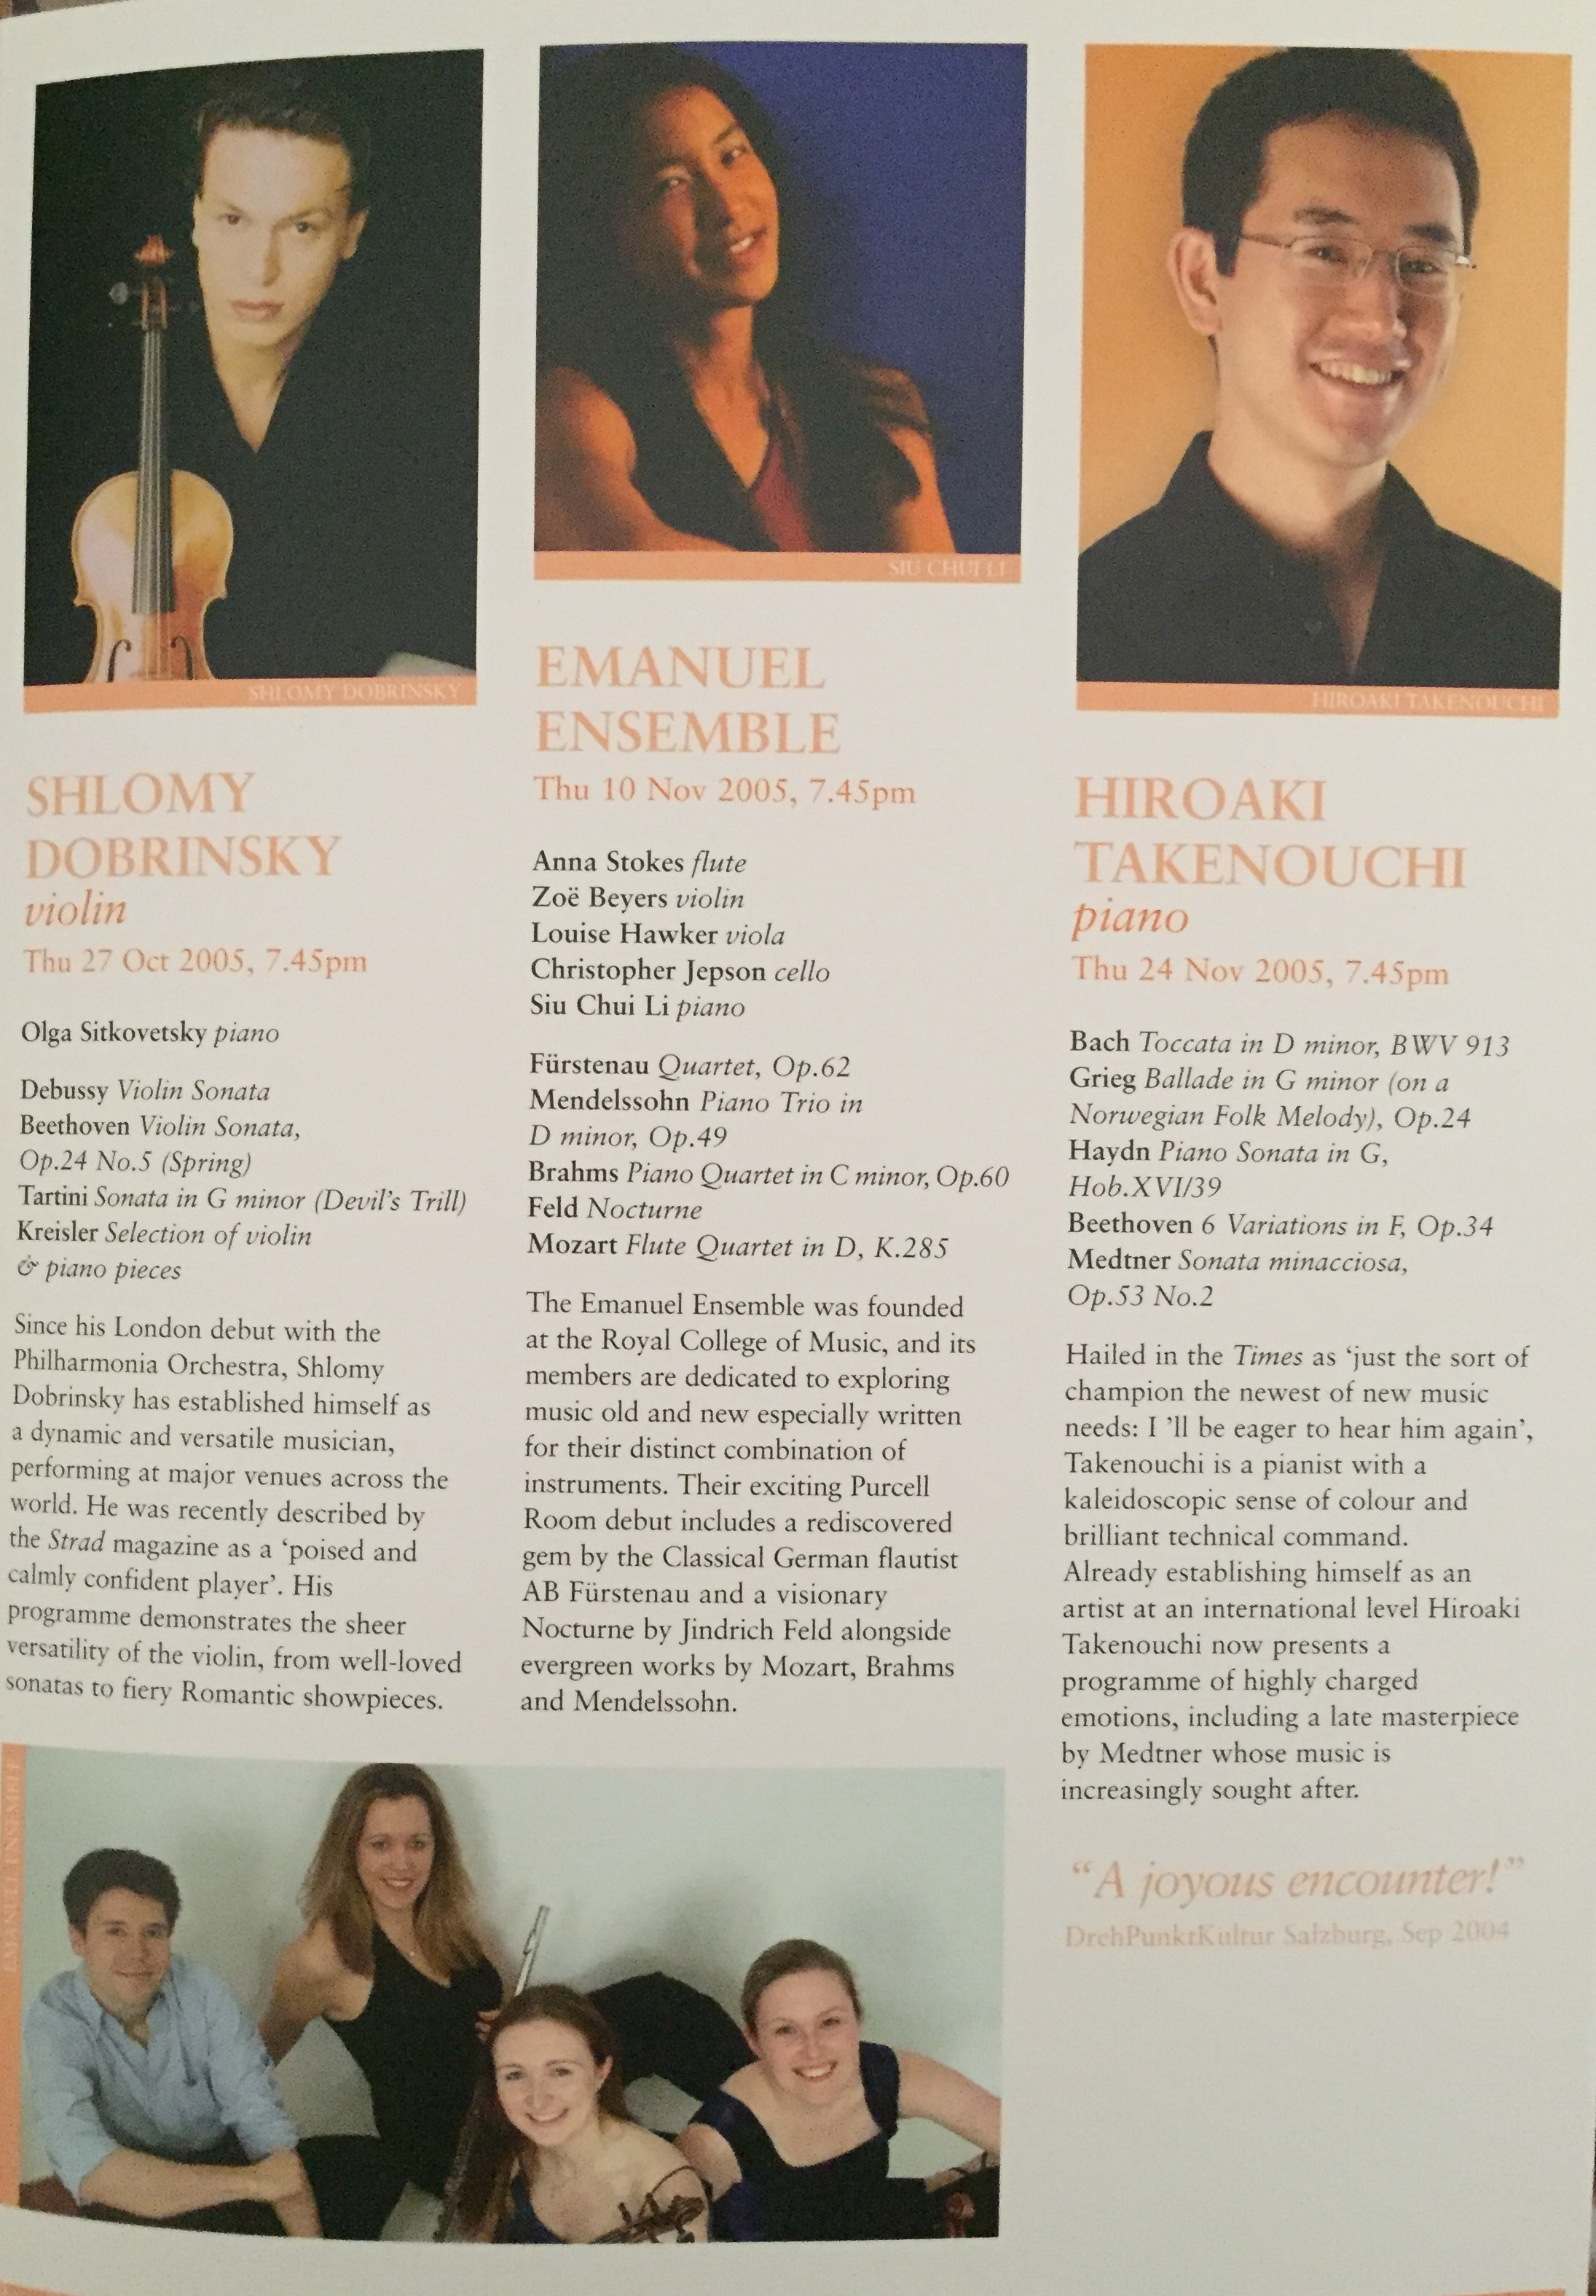 Emanuel Ensemble-Anna Stokes Flute-Purcell Room Recital Fresh Series